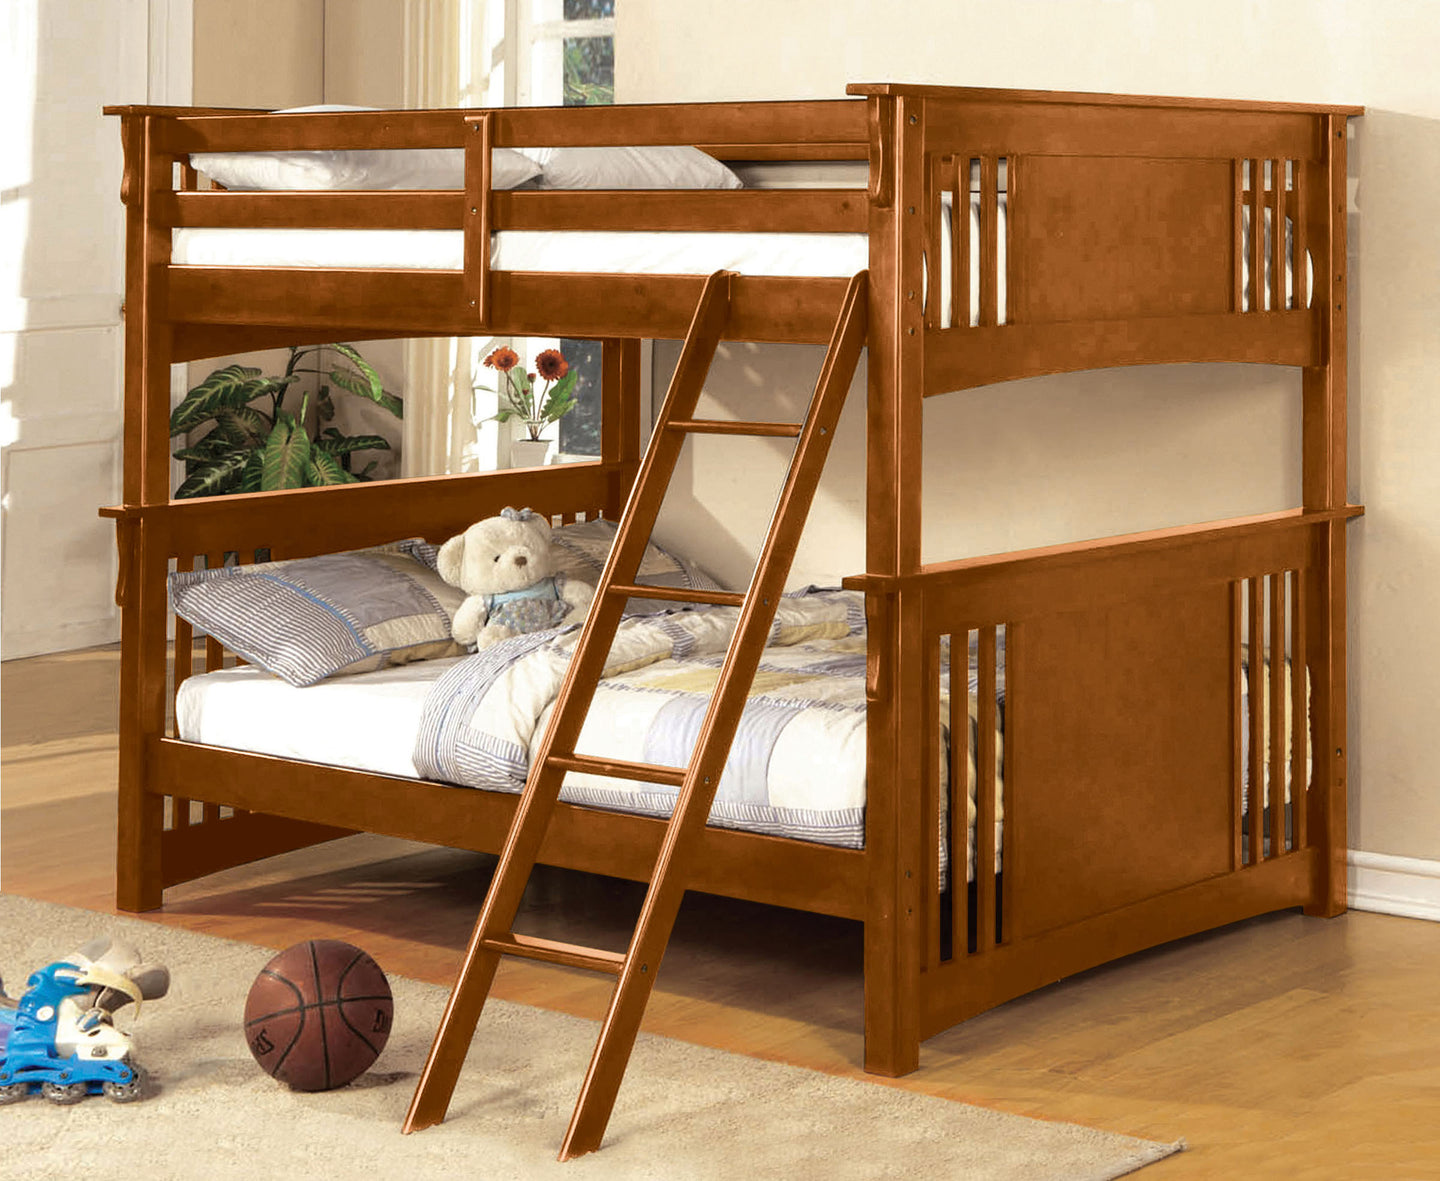 Furniture of America Spring Creek Mission Oak Full over Full Bunk Bed